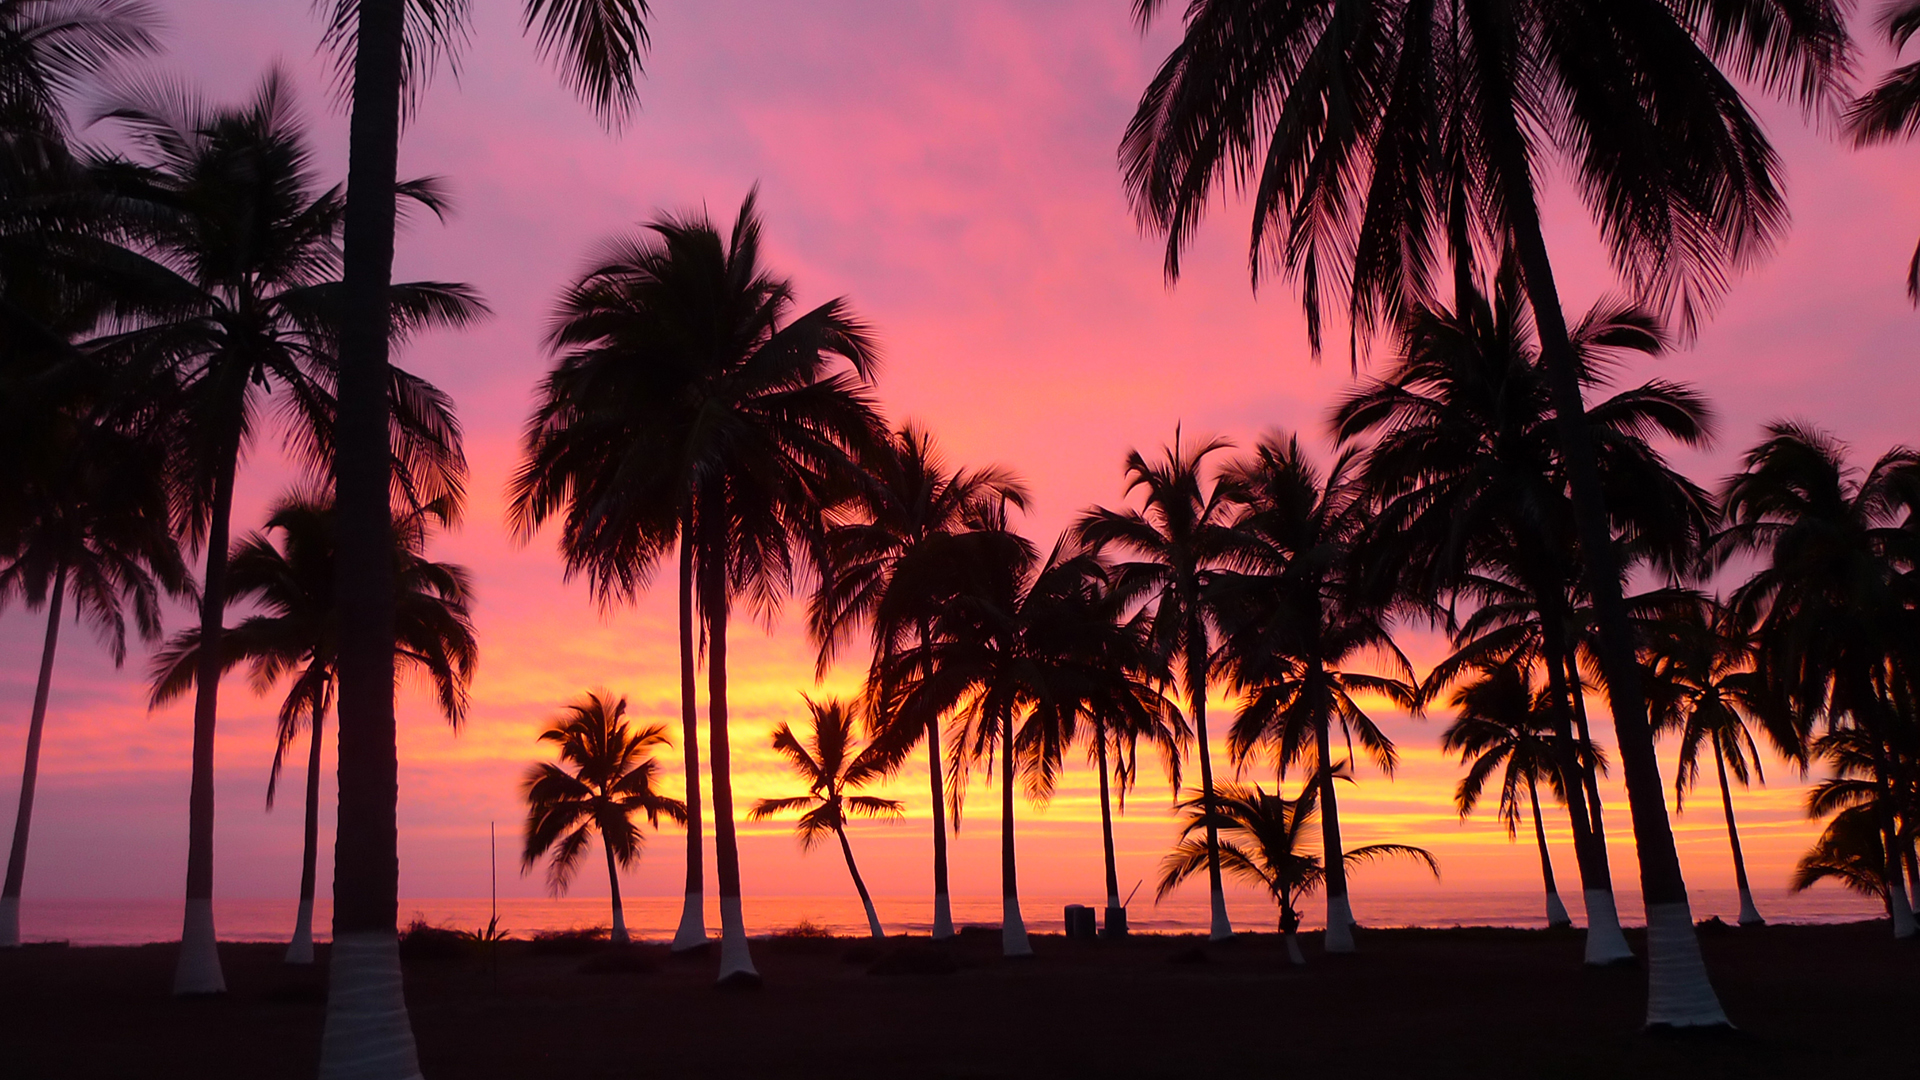 11 Palm Tree Sunset Iphone Wallpaper Purple palm trees ...